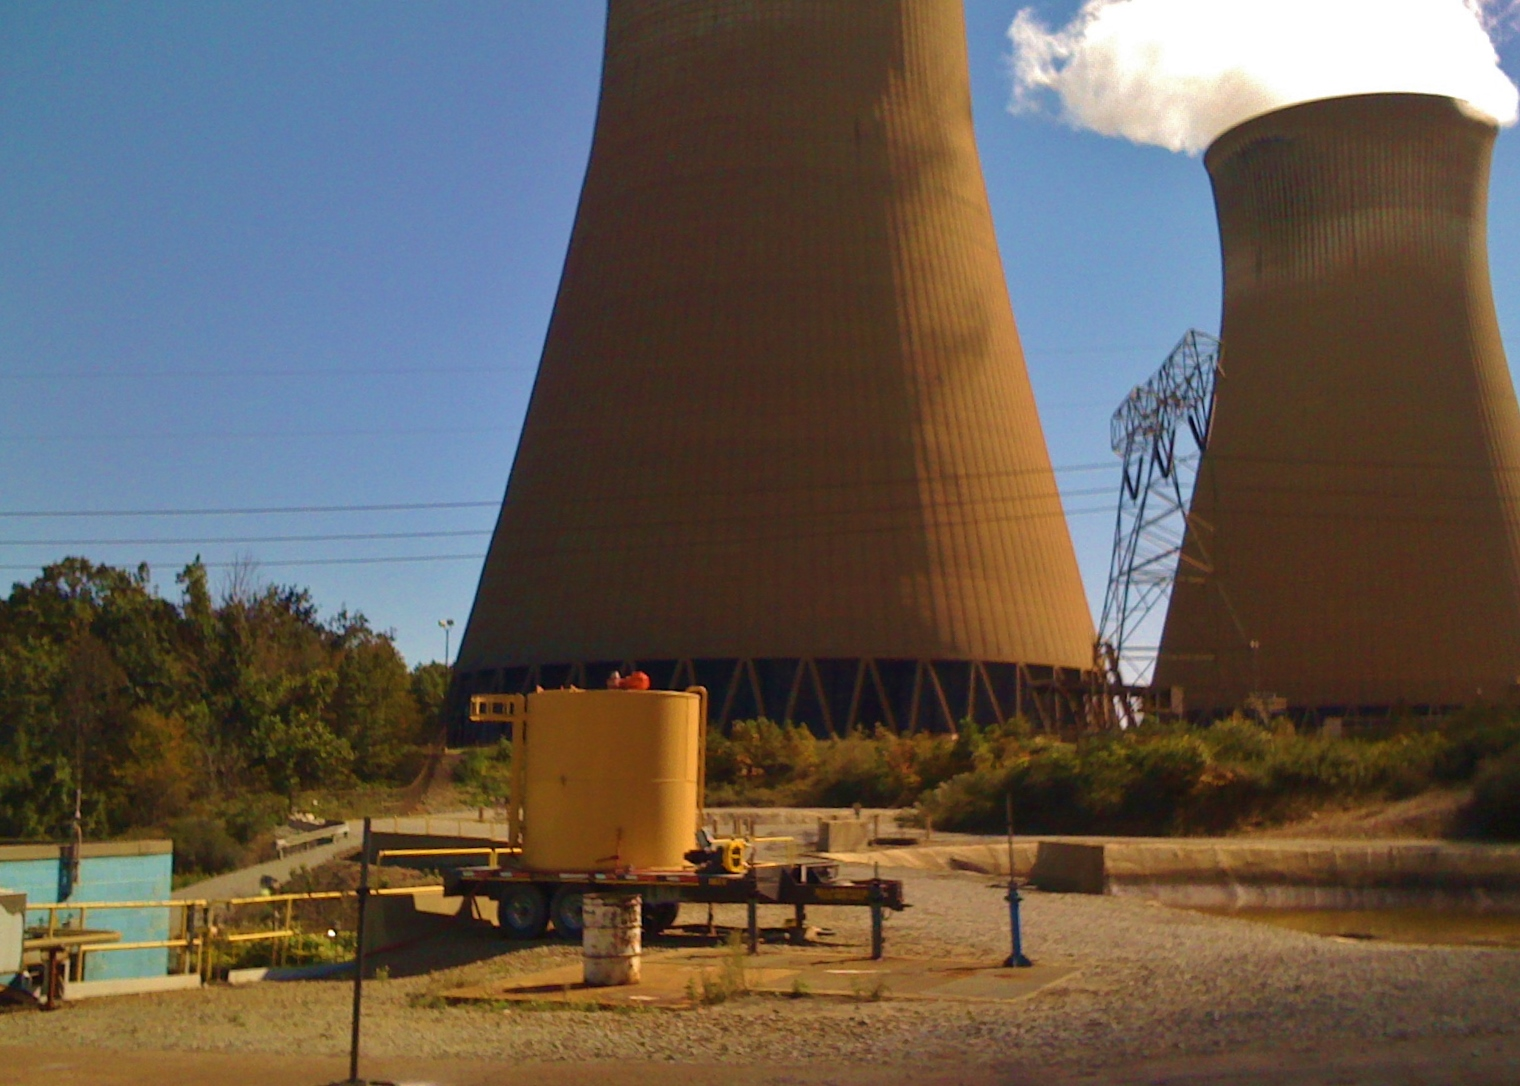 View of storage tank with nuclear power plants in the background